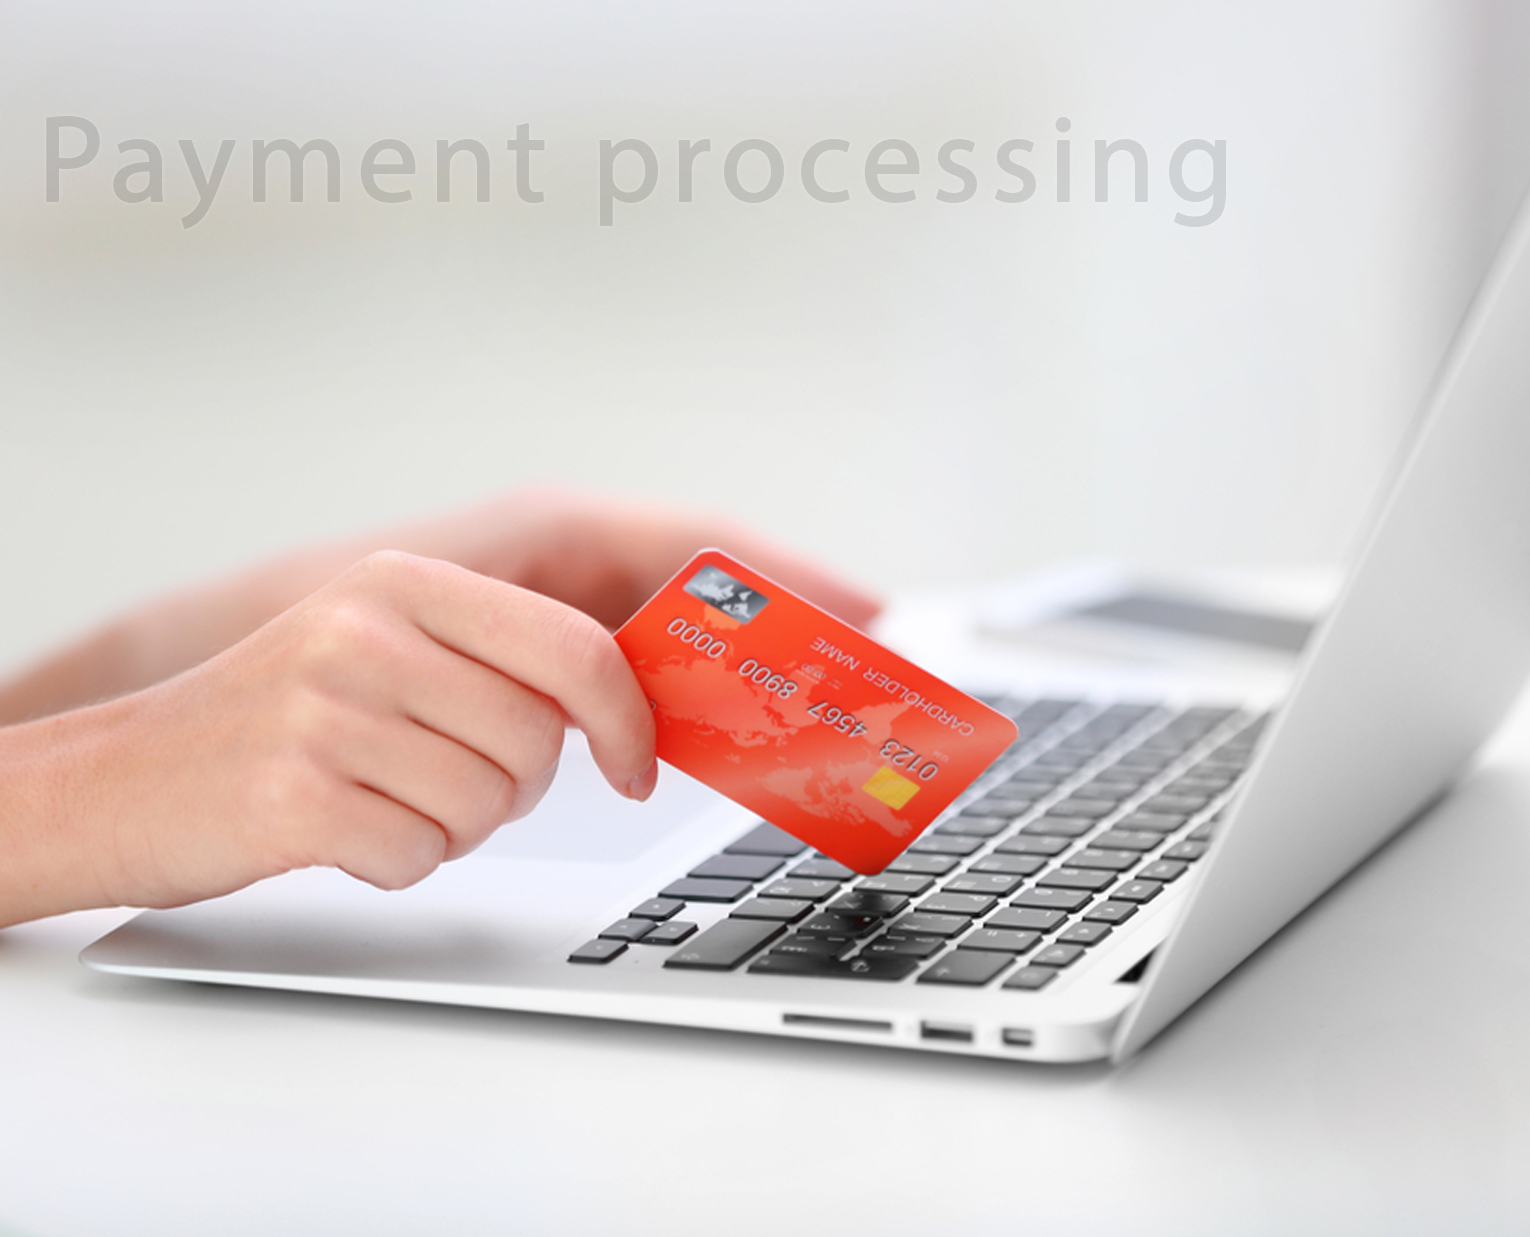 Payment processing trends that dominated in 2017